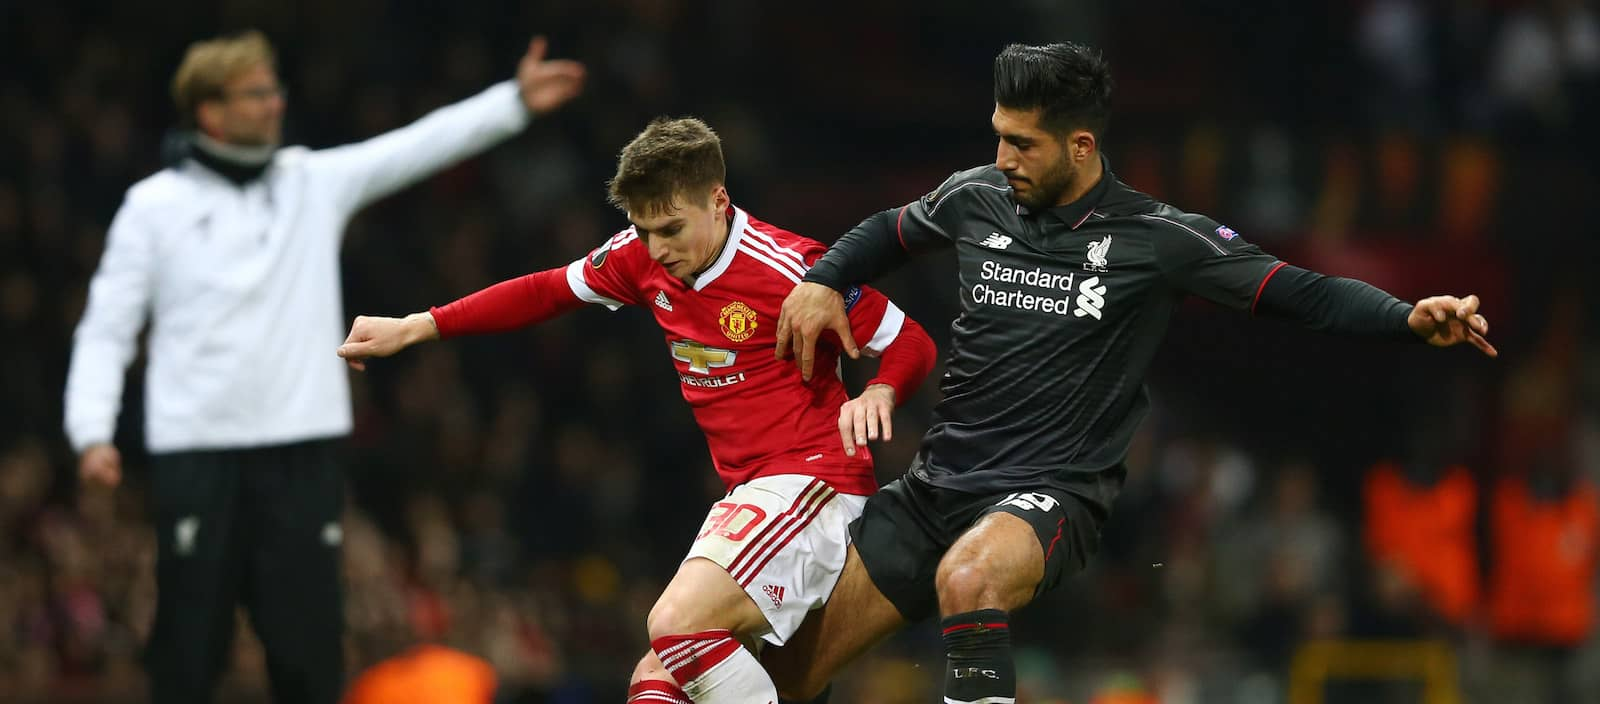 Guillermo Varela set to re-join Penarol this summer – report